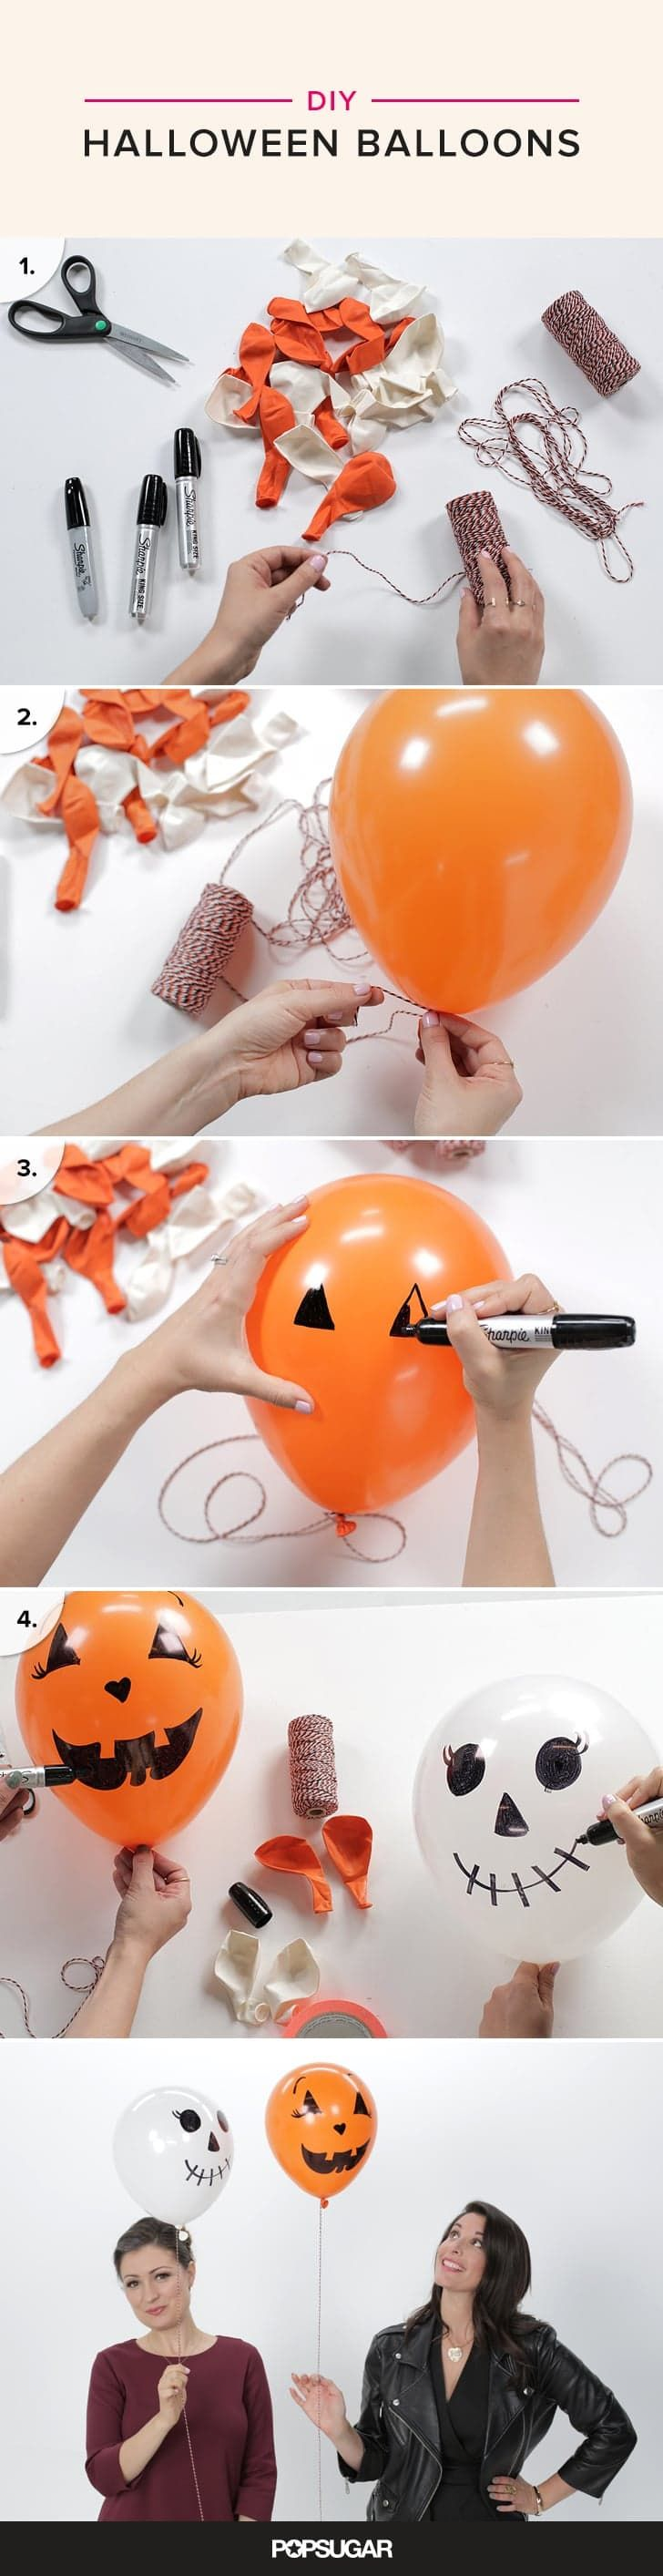 If you need any easy and affordable DIY project to spruce up your Halloween party, look no further than these balloons.